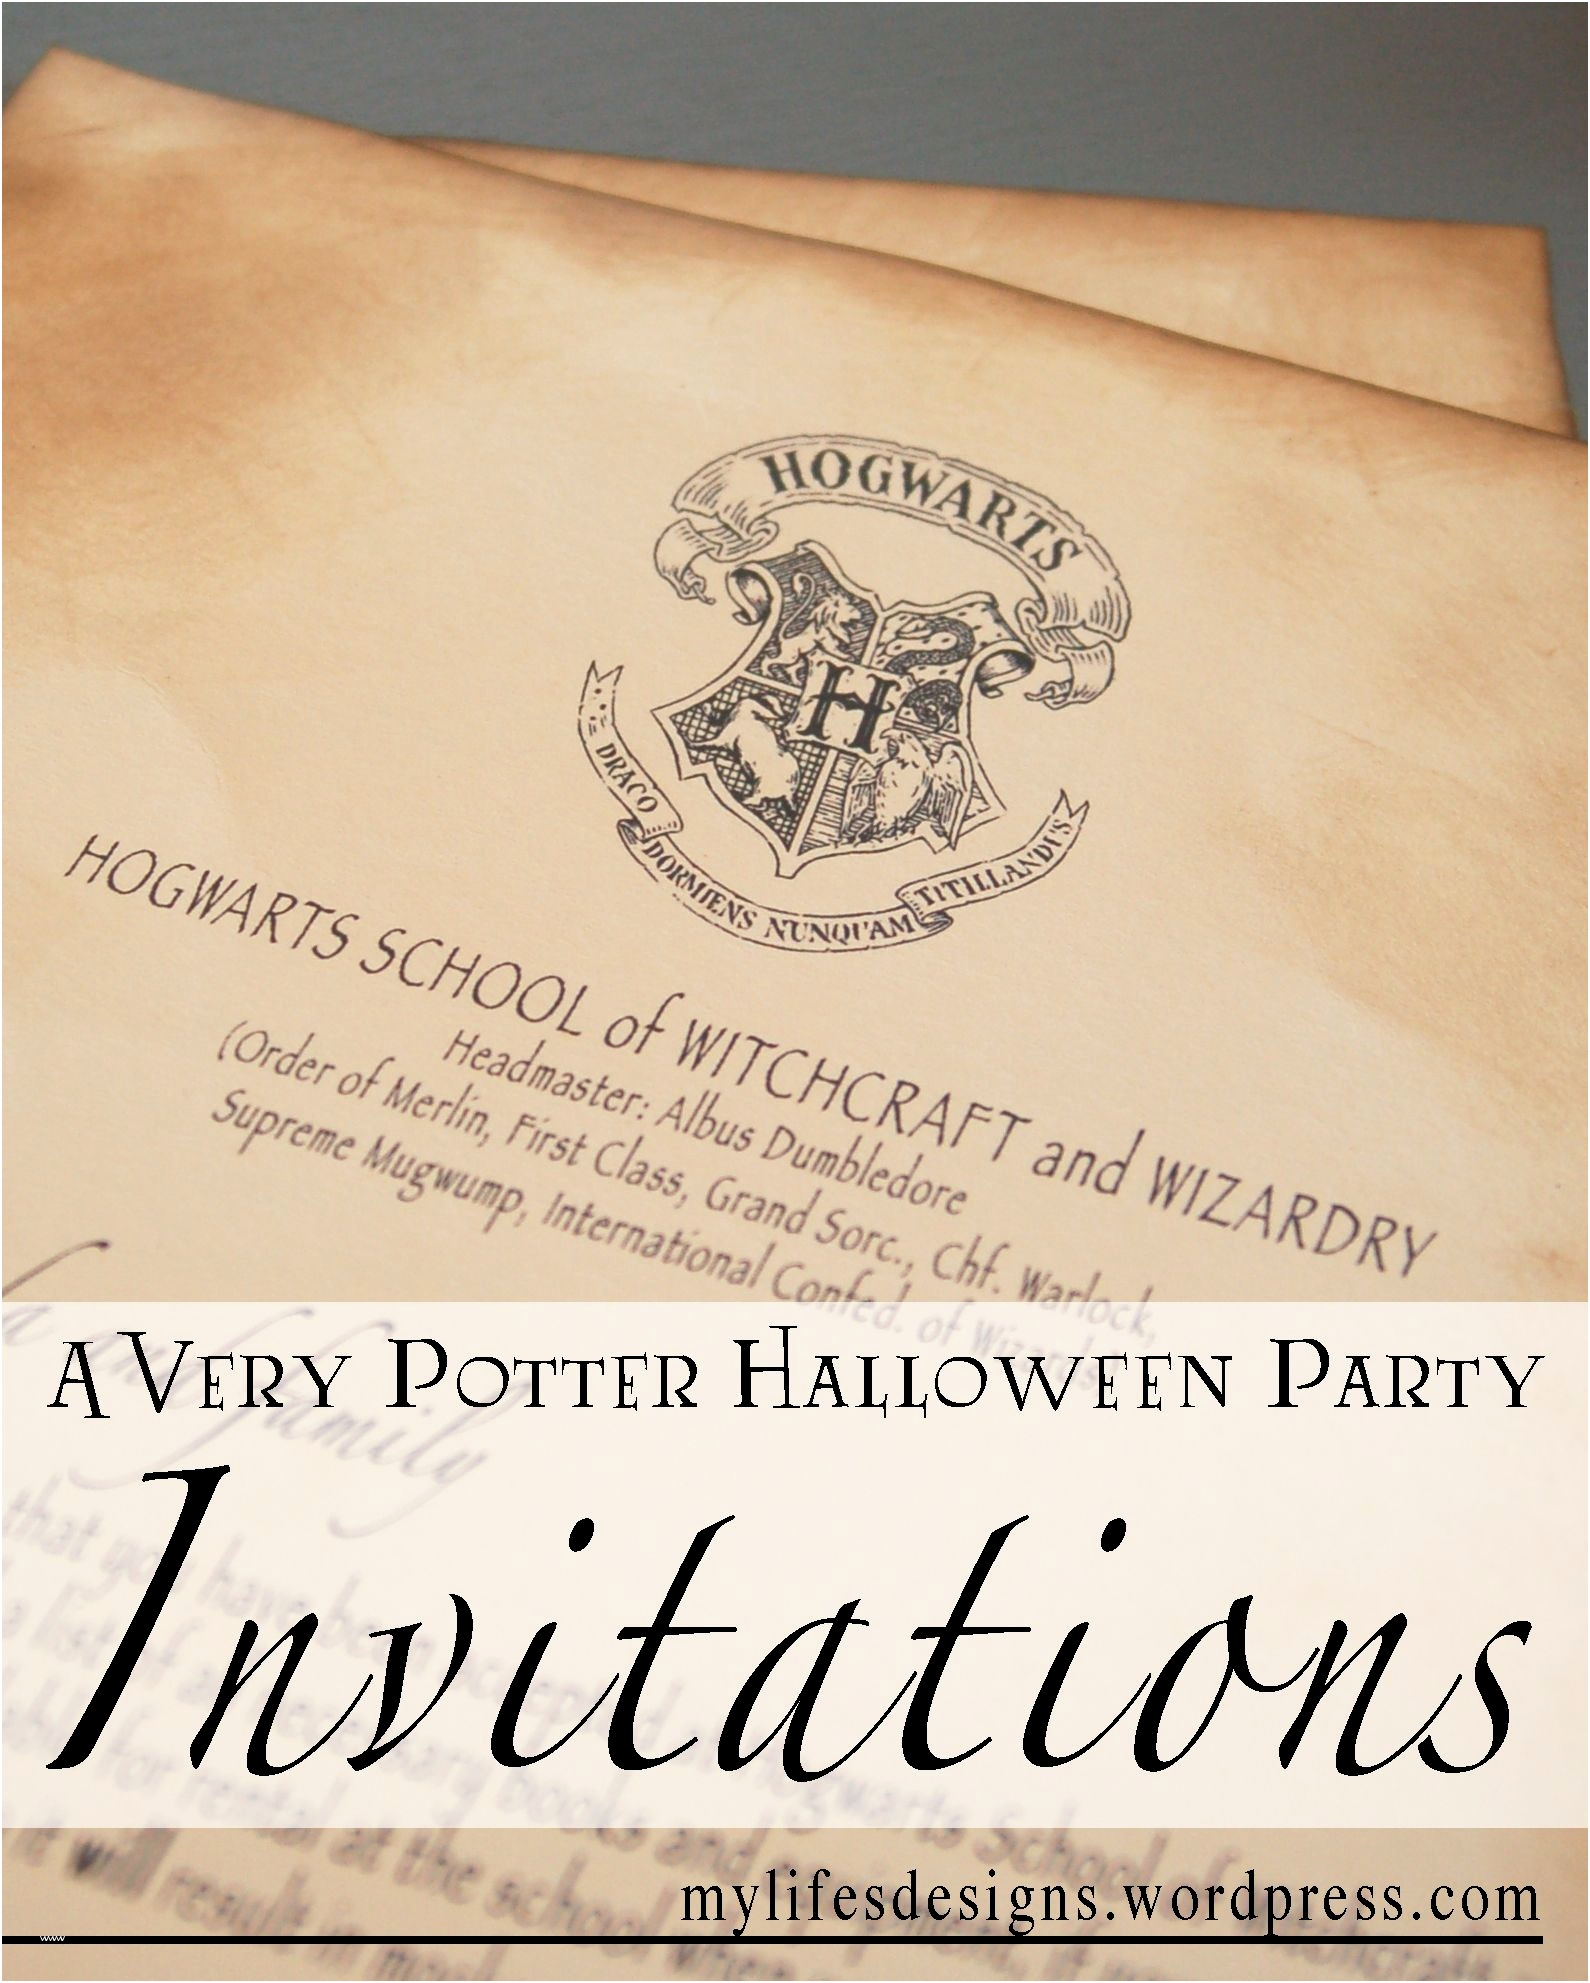 make your own harry potter birthday card ; make-your-own-birthday-card-free-best-of-free-s-to-create-your-own-harry-potter-party-invitations-or-of-make-your-own-birthday-card-free